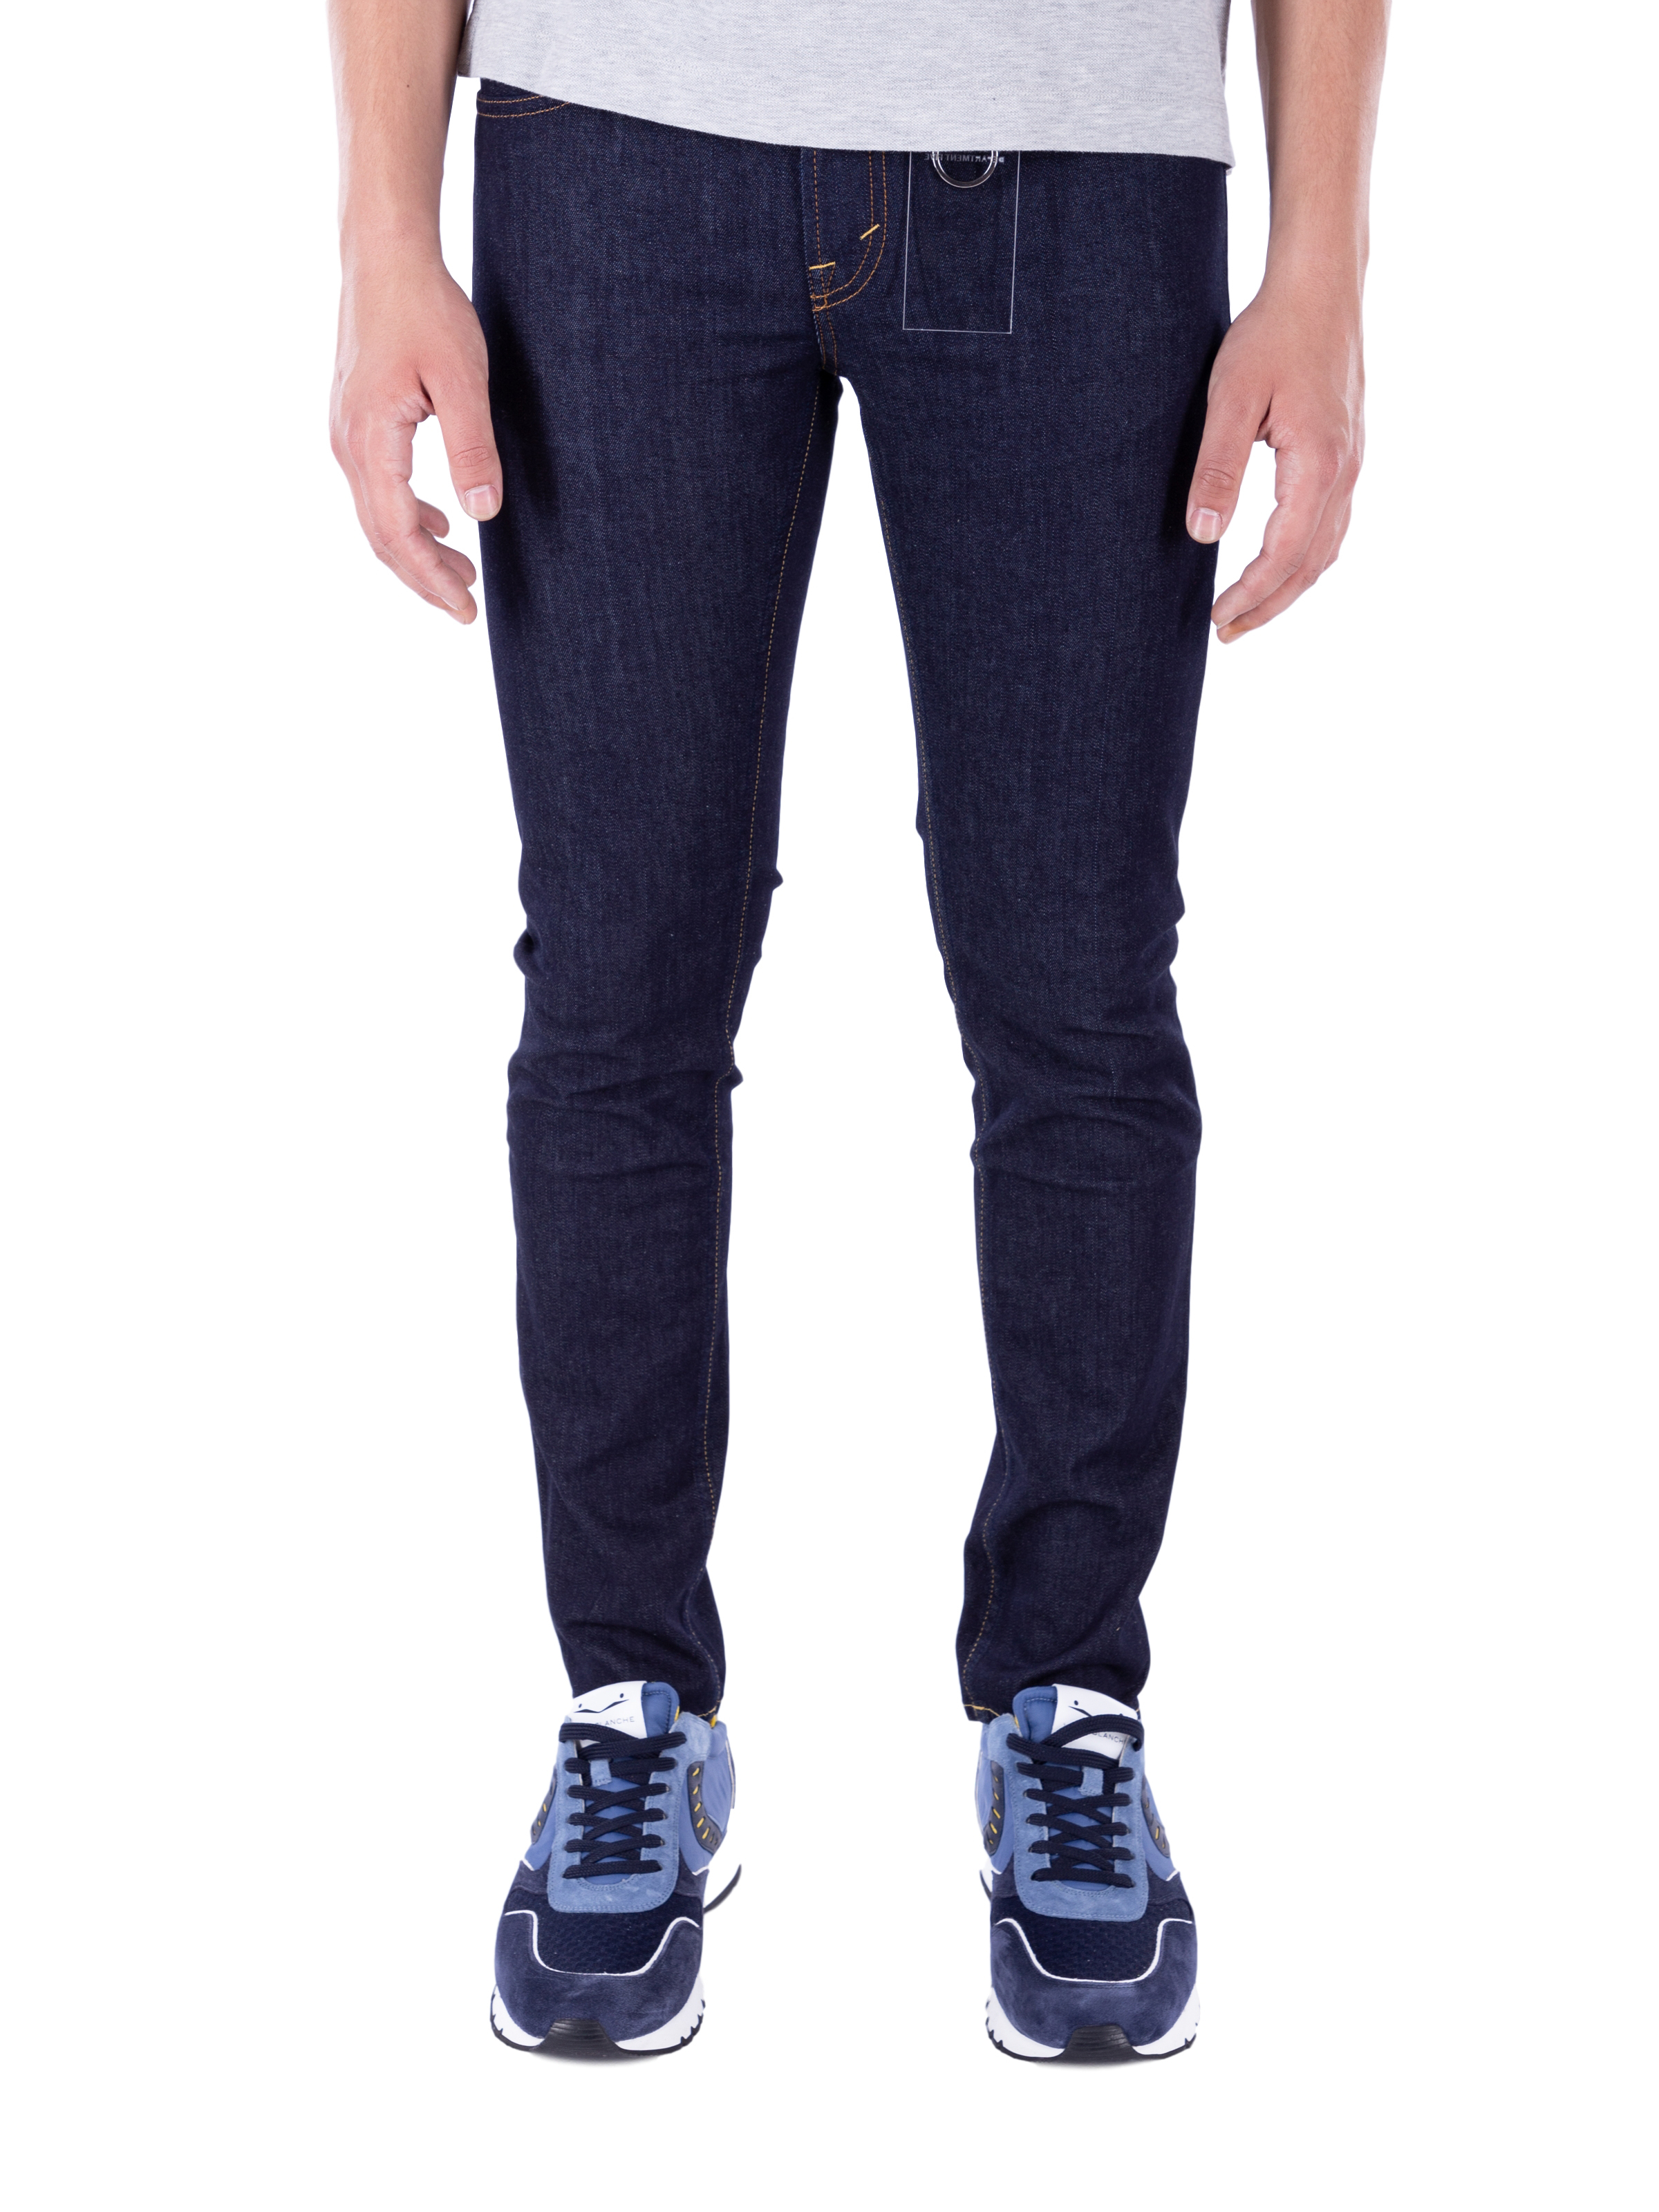 Department Five Pantalone Skeith U20D11 D2008